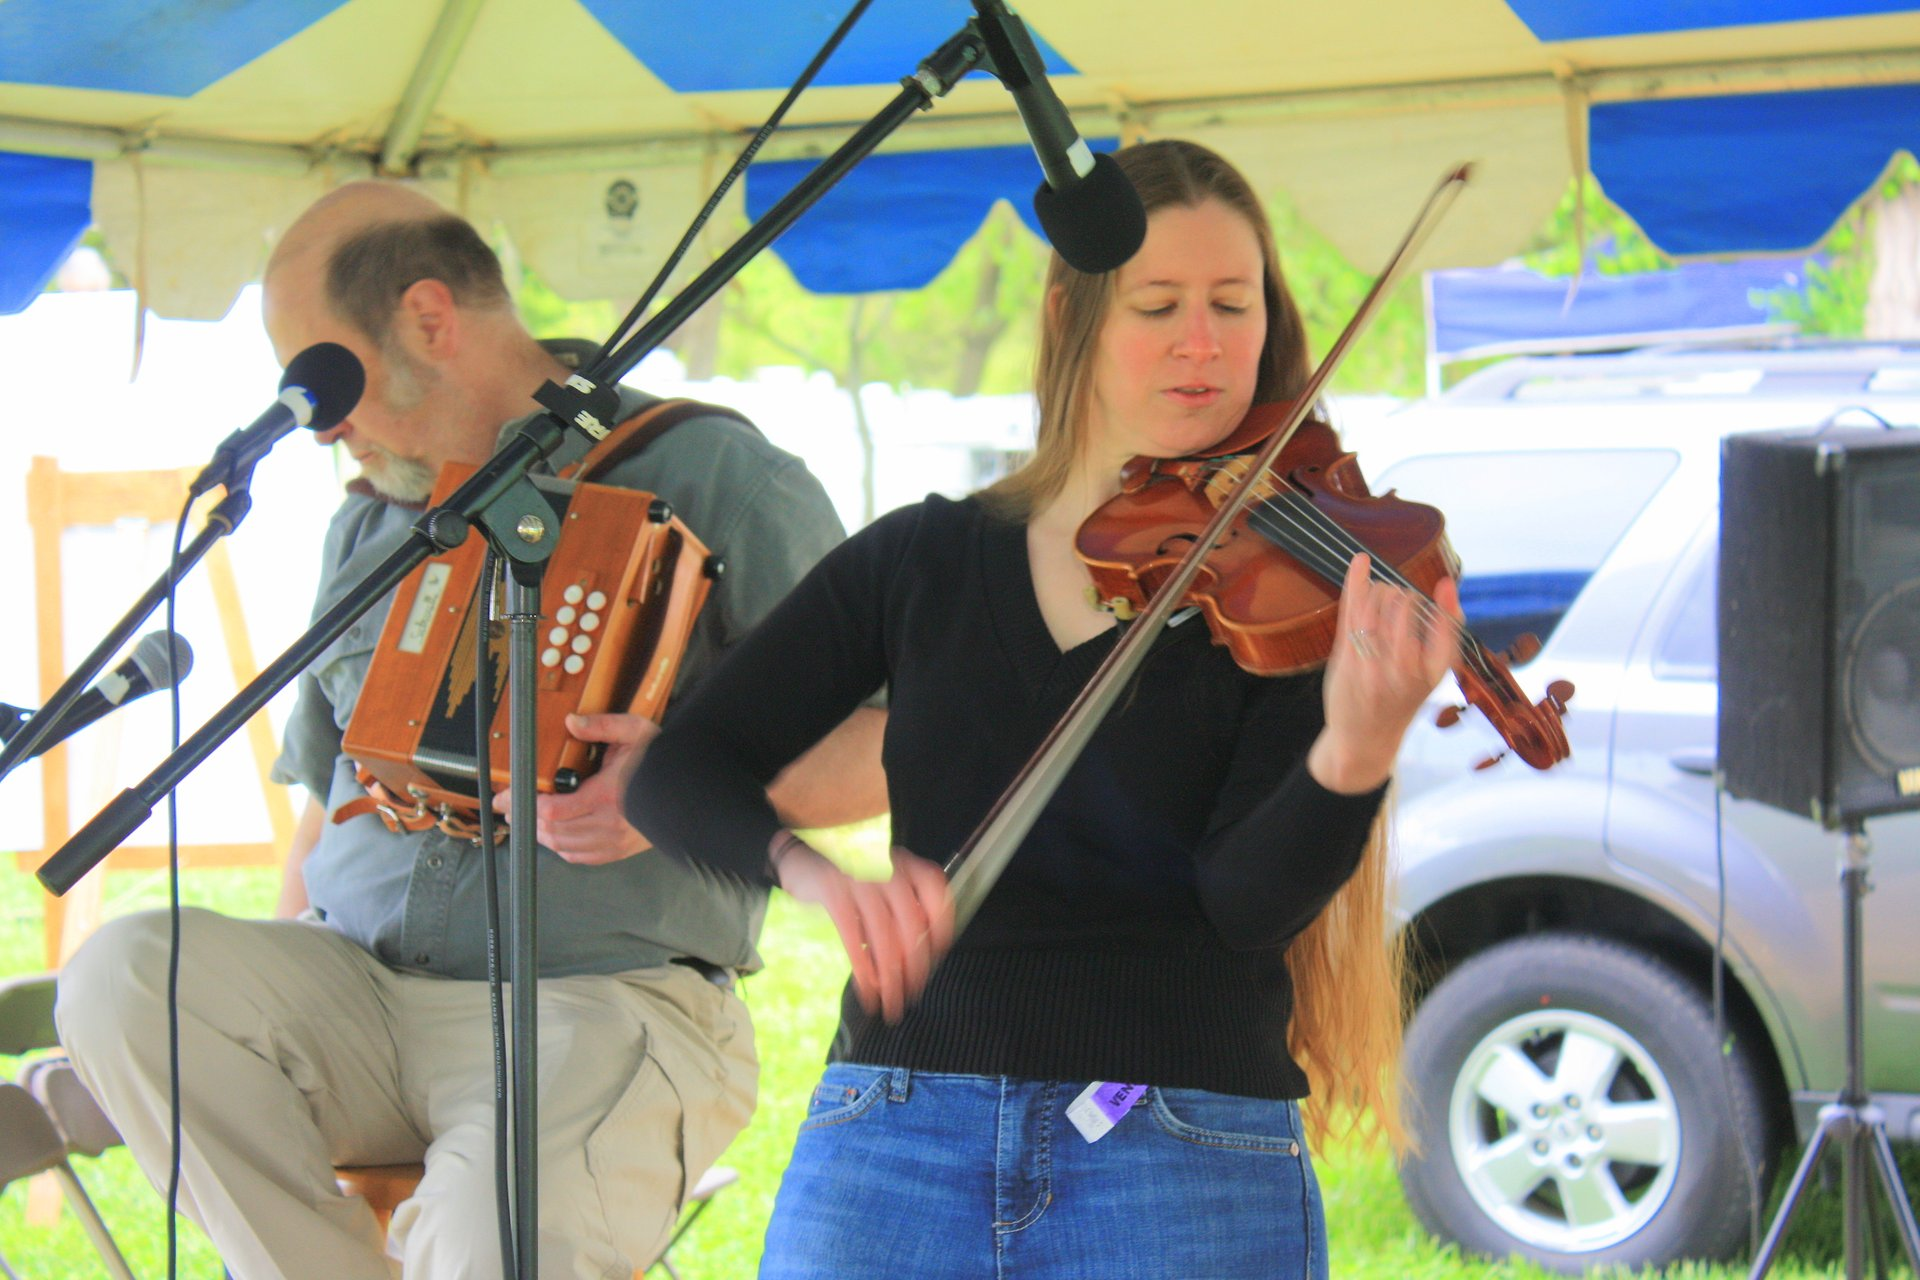 Best time for Southern Maryland Celtic Festival in Maryland 2020